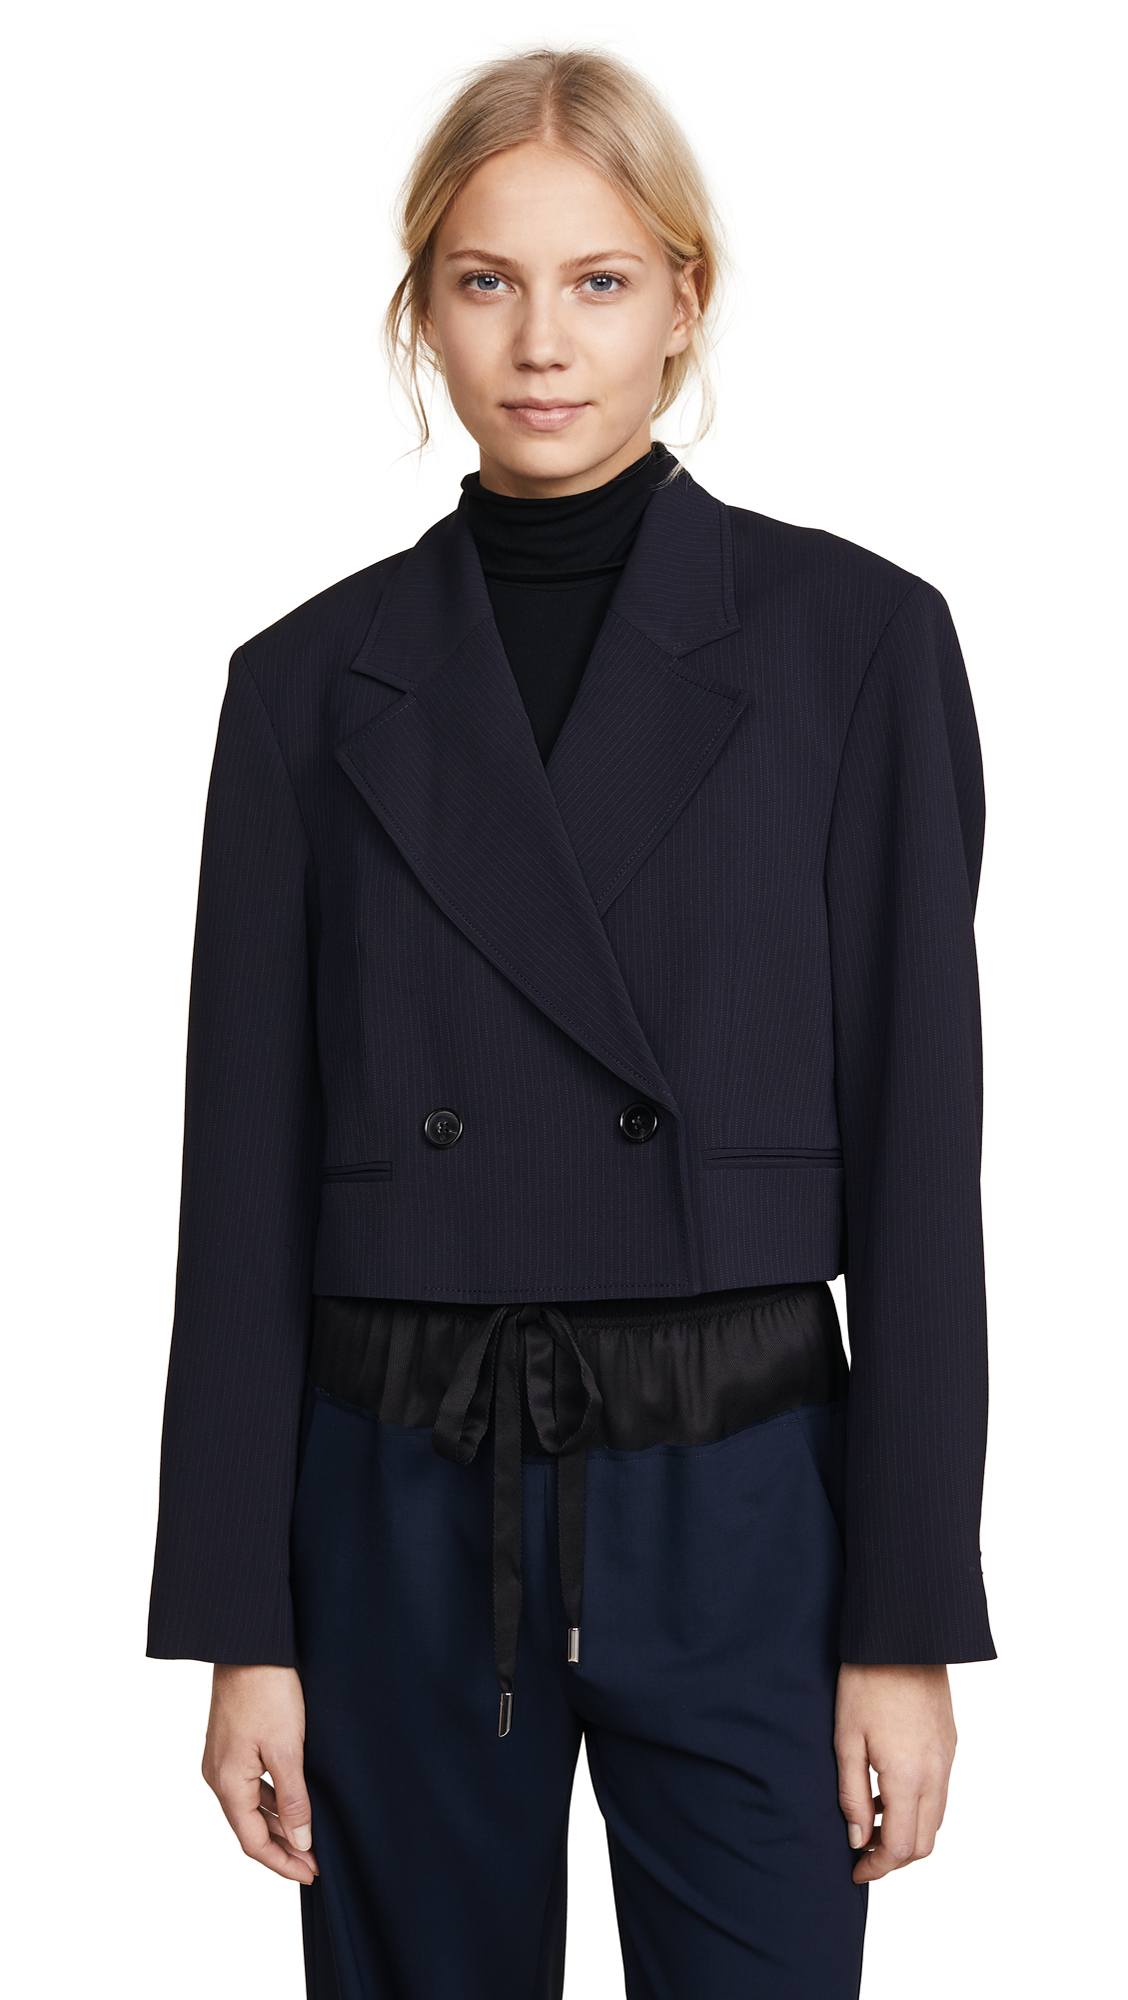 6cd2628adf1af4 3.1 Phillip Lim Pinstripe Tailored Blazer In Midnight Ivory